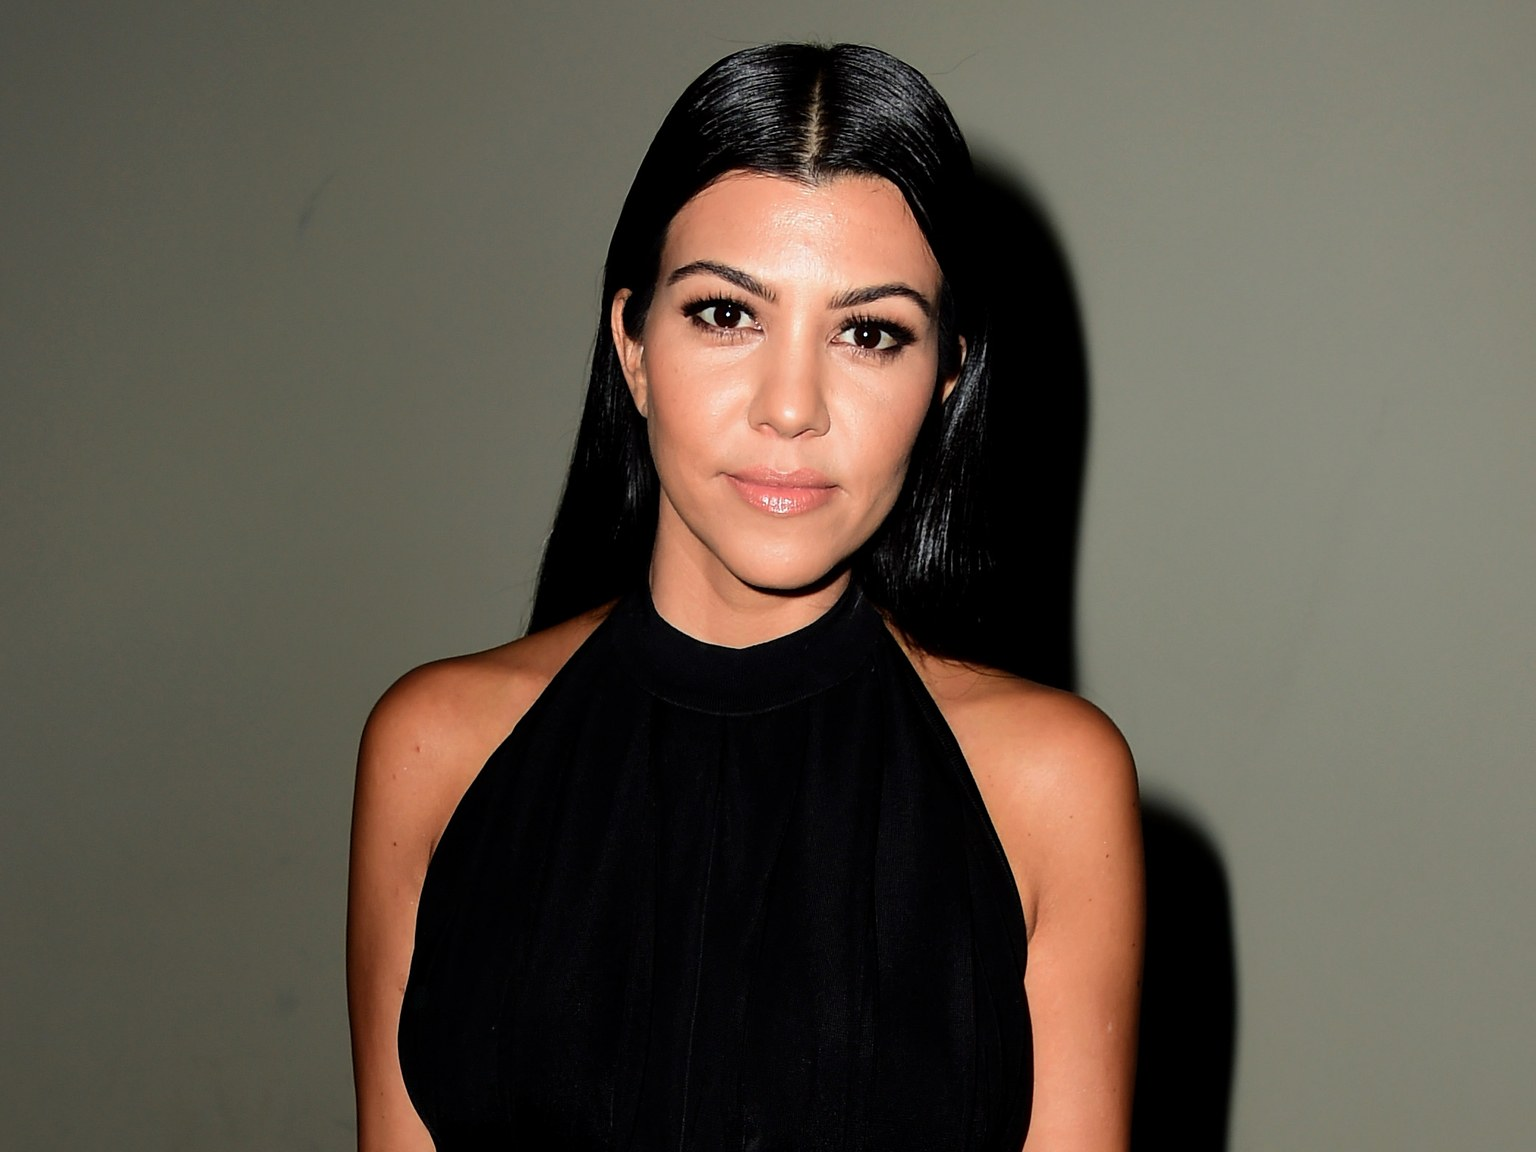 """kuwk-heres-what-kourtney-kardashian-thinks-of-daughter-penelope-being-called-racist-over-controversial-picture"""